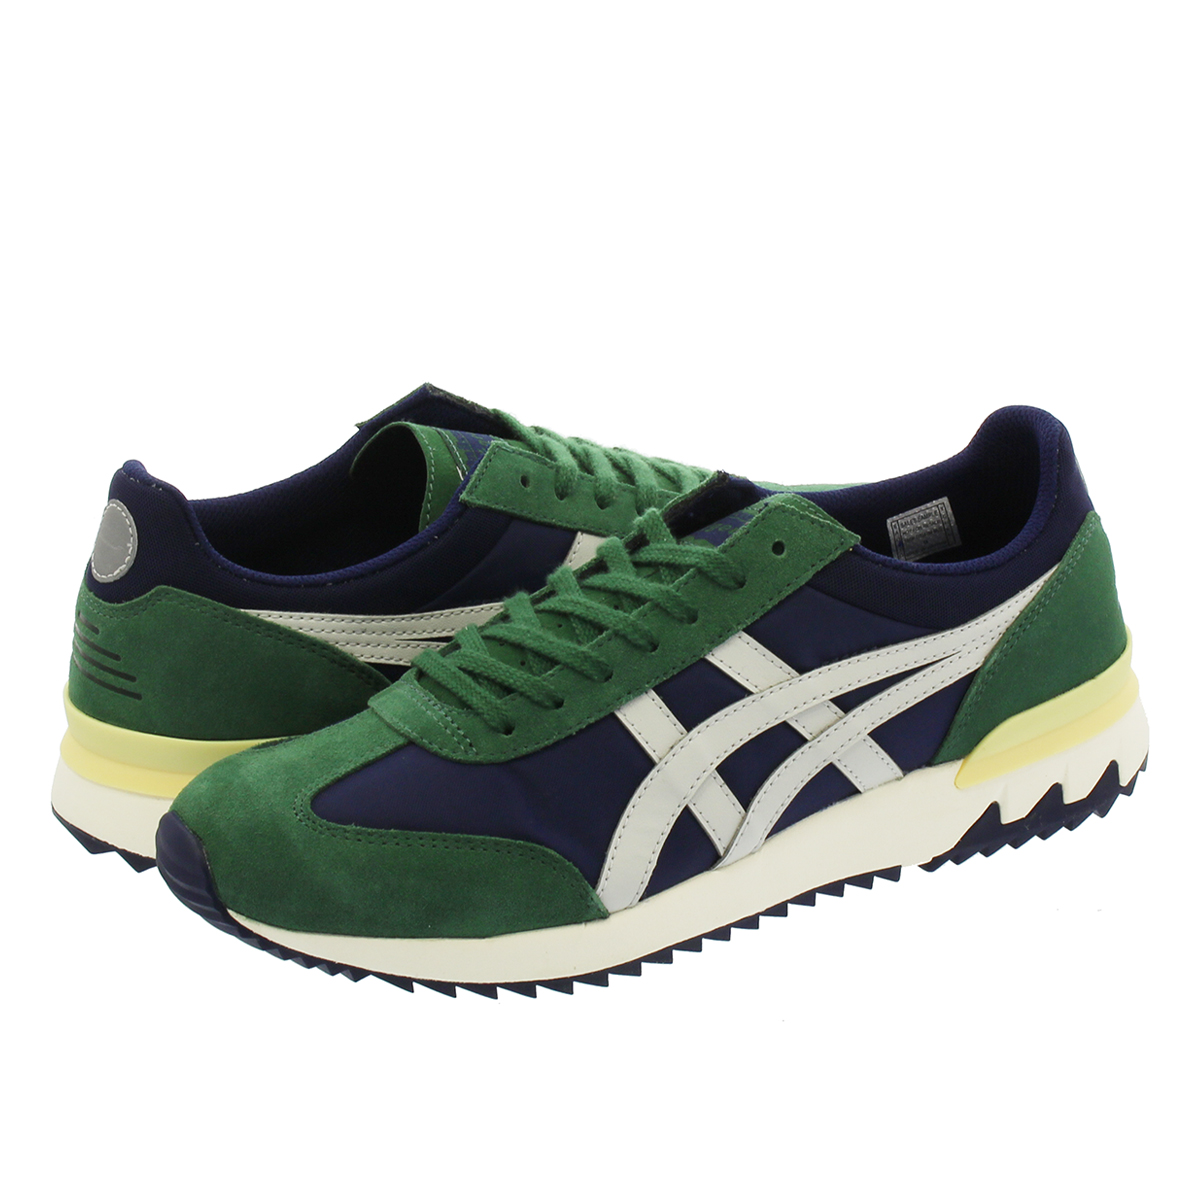 Onitsuka Tiger CALIFORNIA 78 EX オニツカタイガー カリフォルニア 78 EX PEACOAT/GLACER GREY 1183a194-401